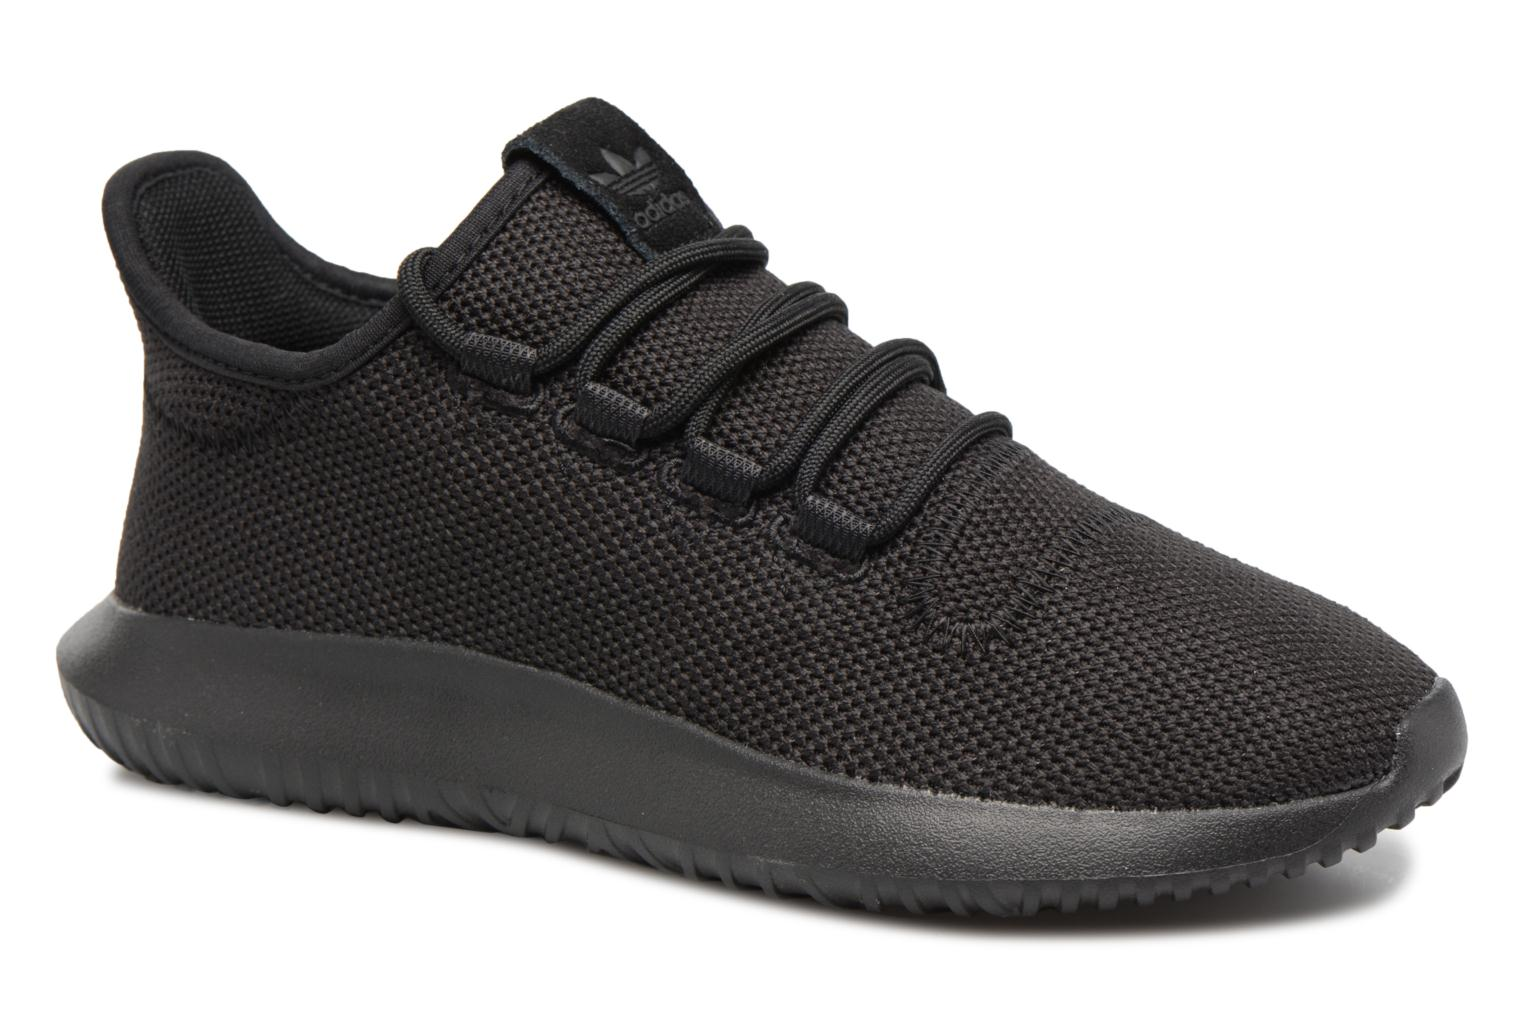 Baskets Adidas Originals Tubular Shadow J Noir vue détail/paire